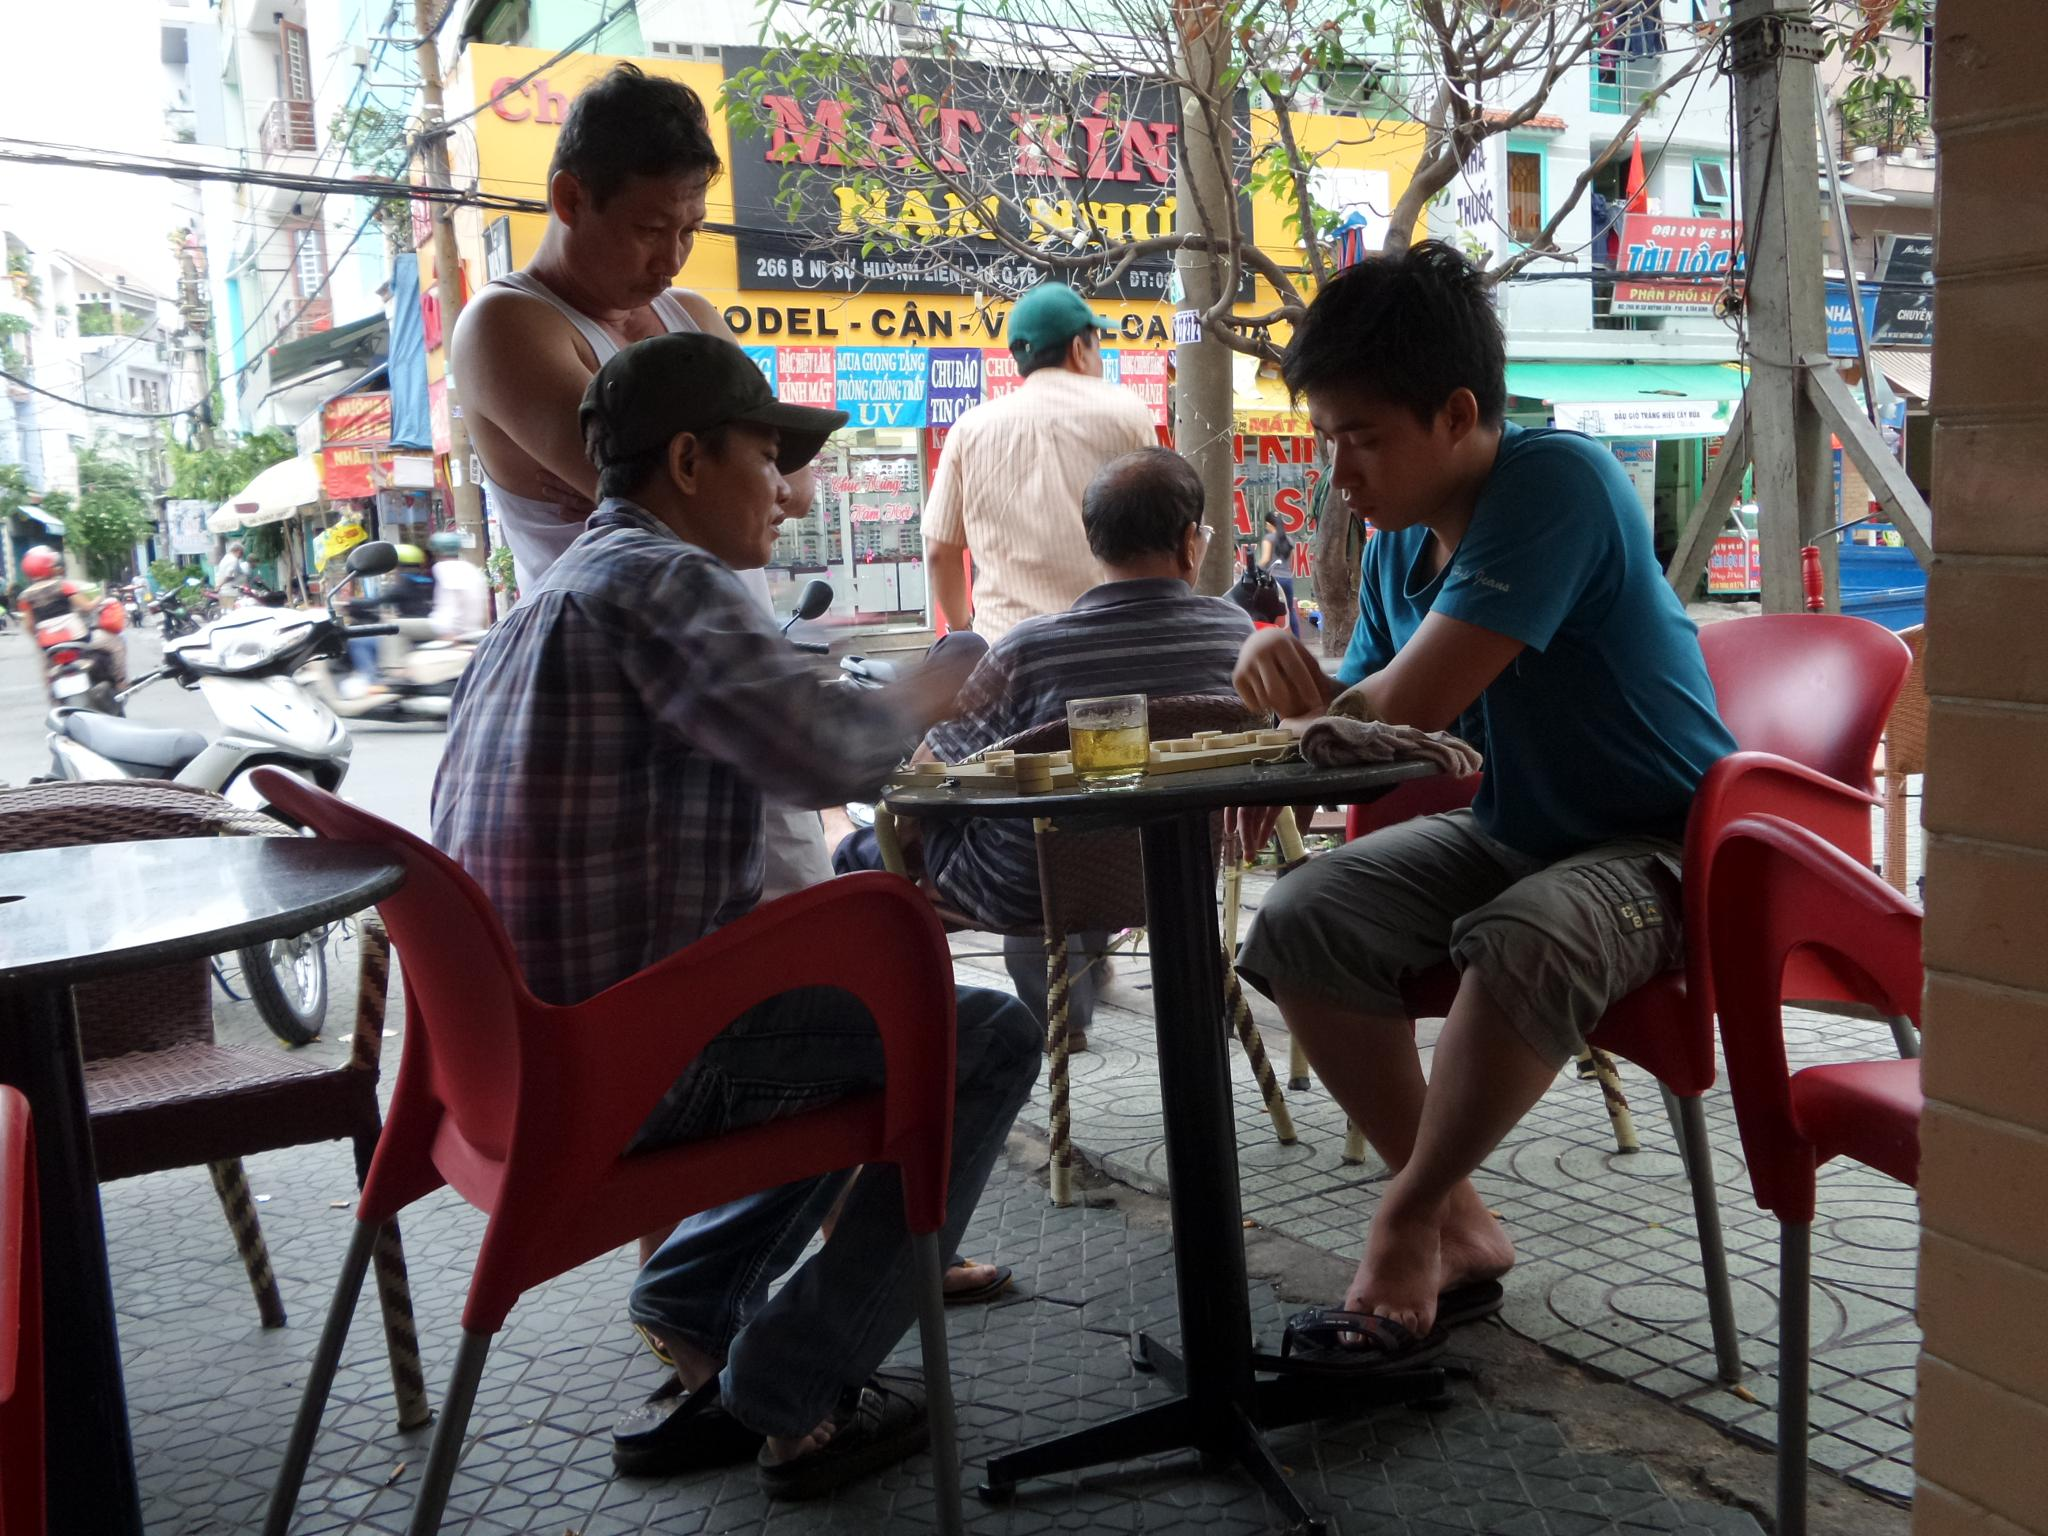 Chess on the street by Tran Ngoc Nghi